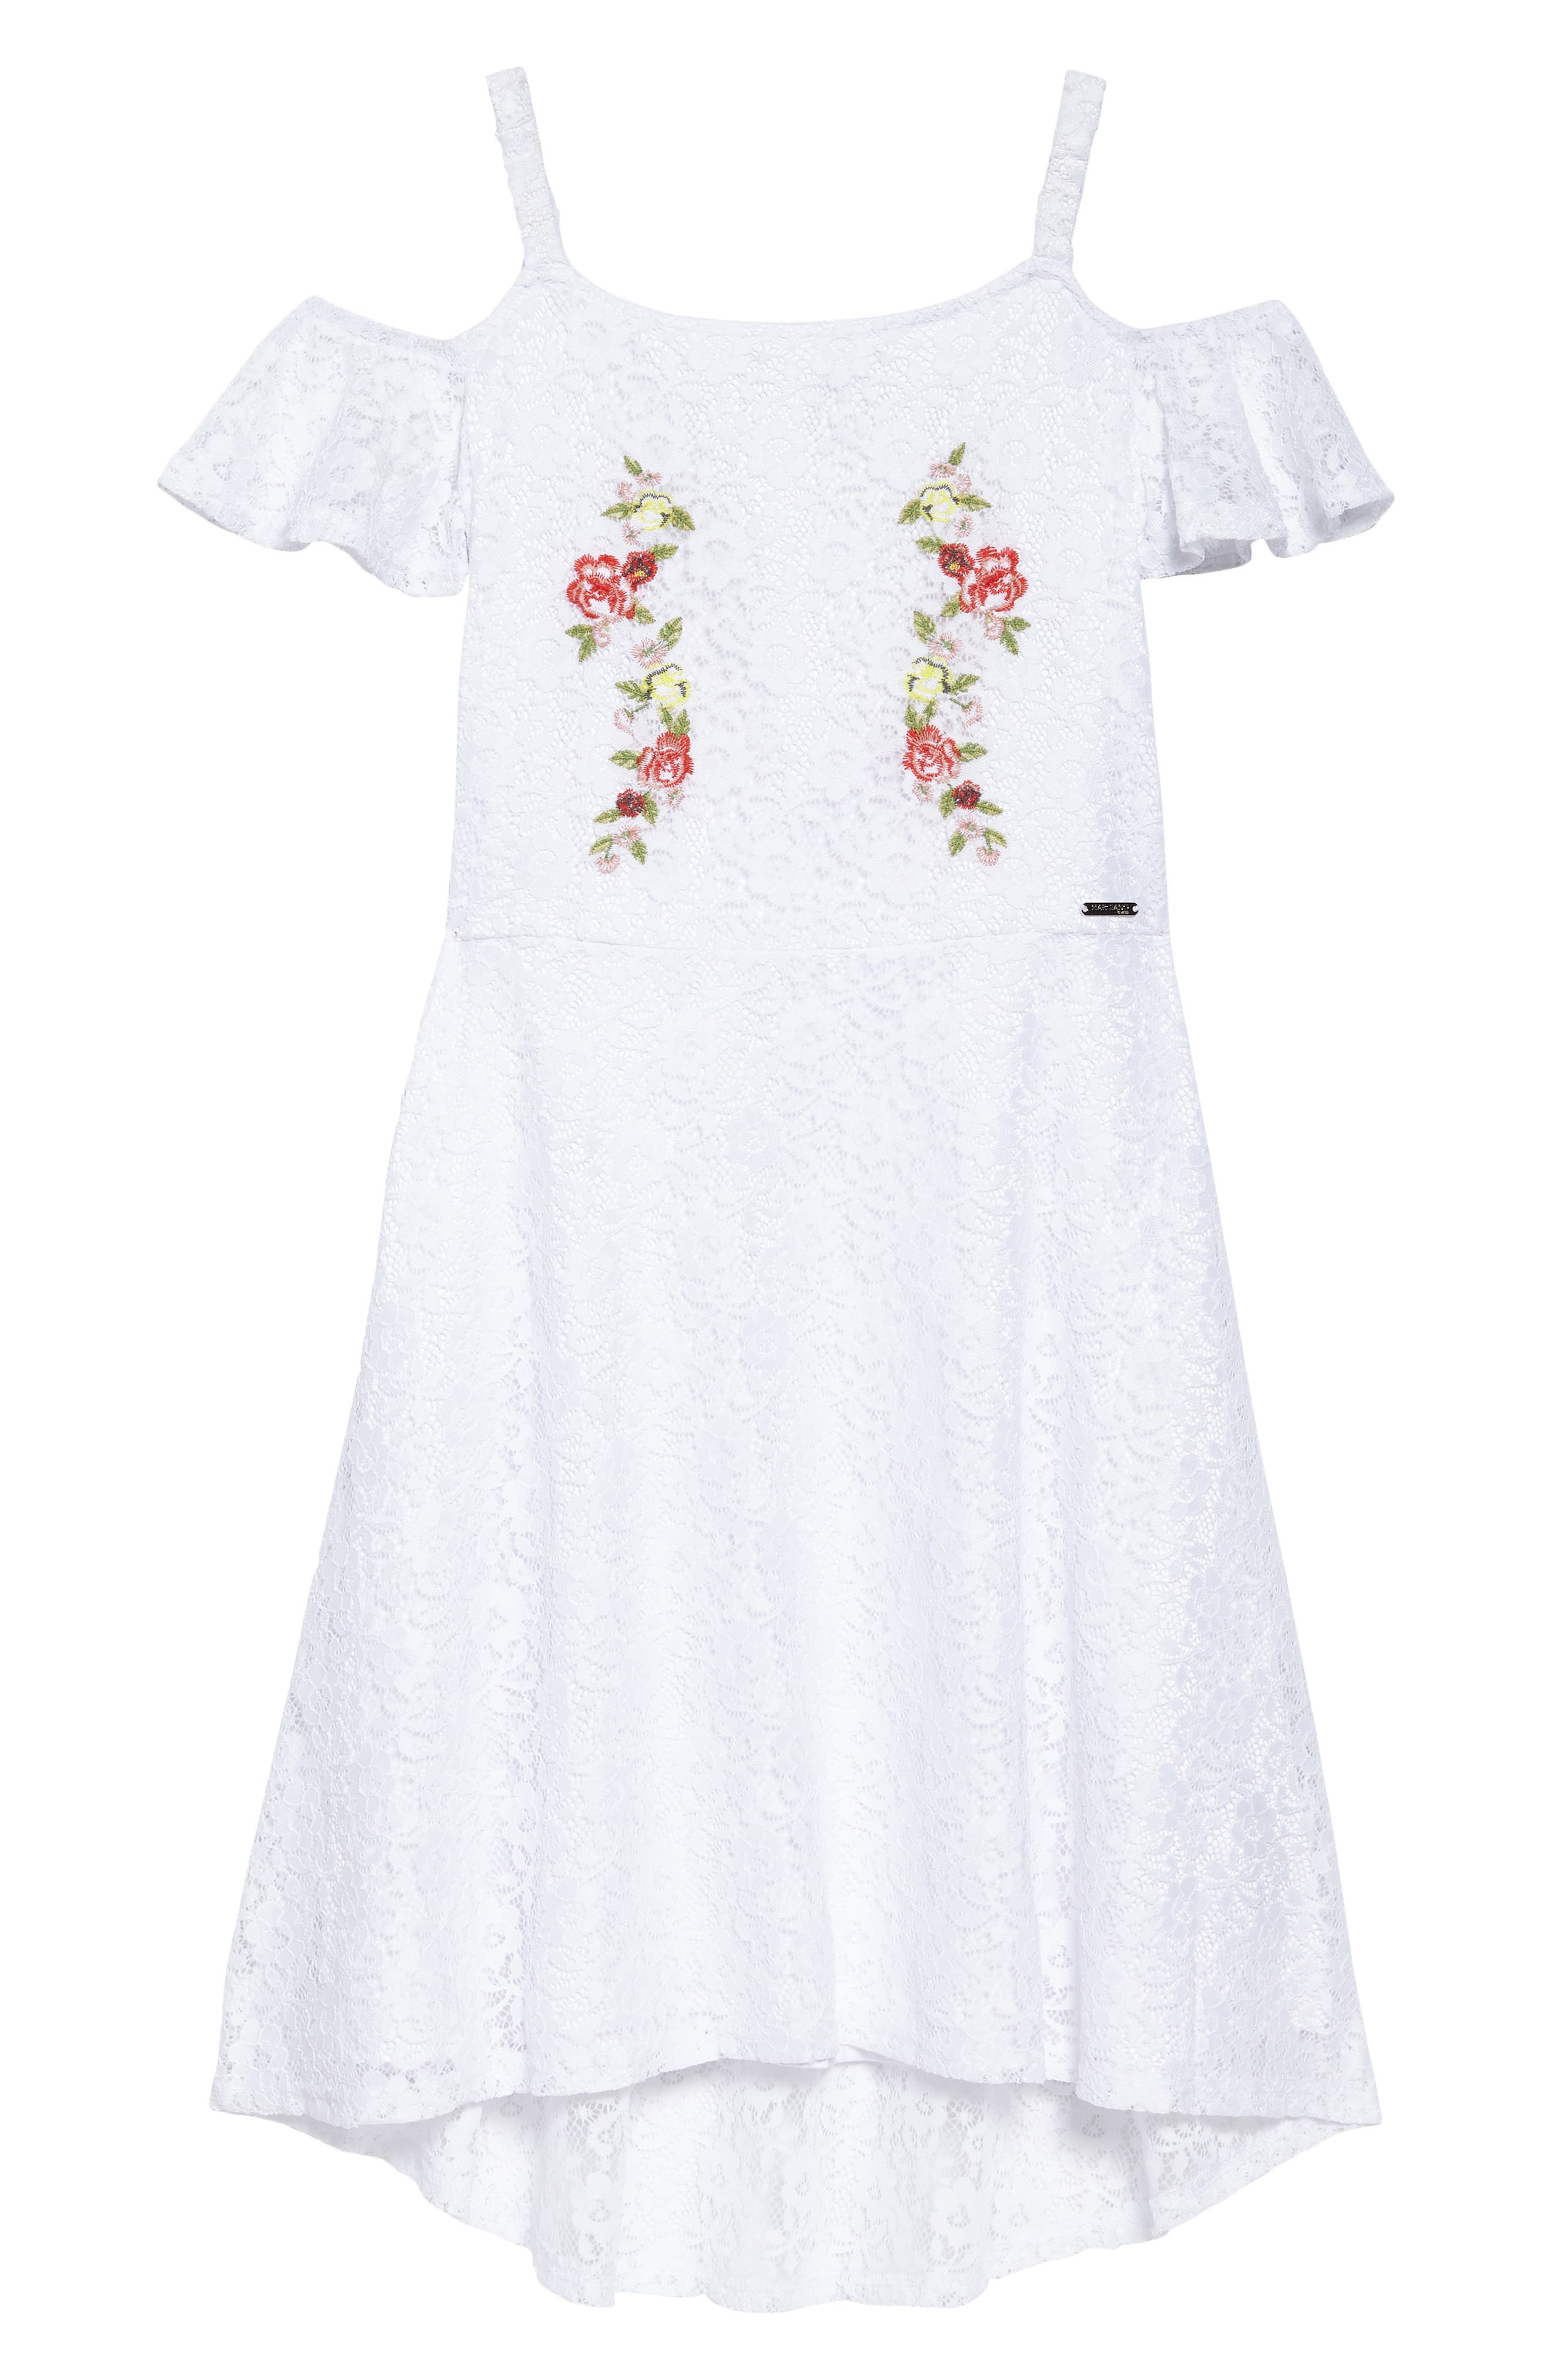 Main Image - Marciano Embroidered Lace Cold Shoulder Dress (Big Girls)